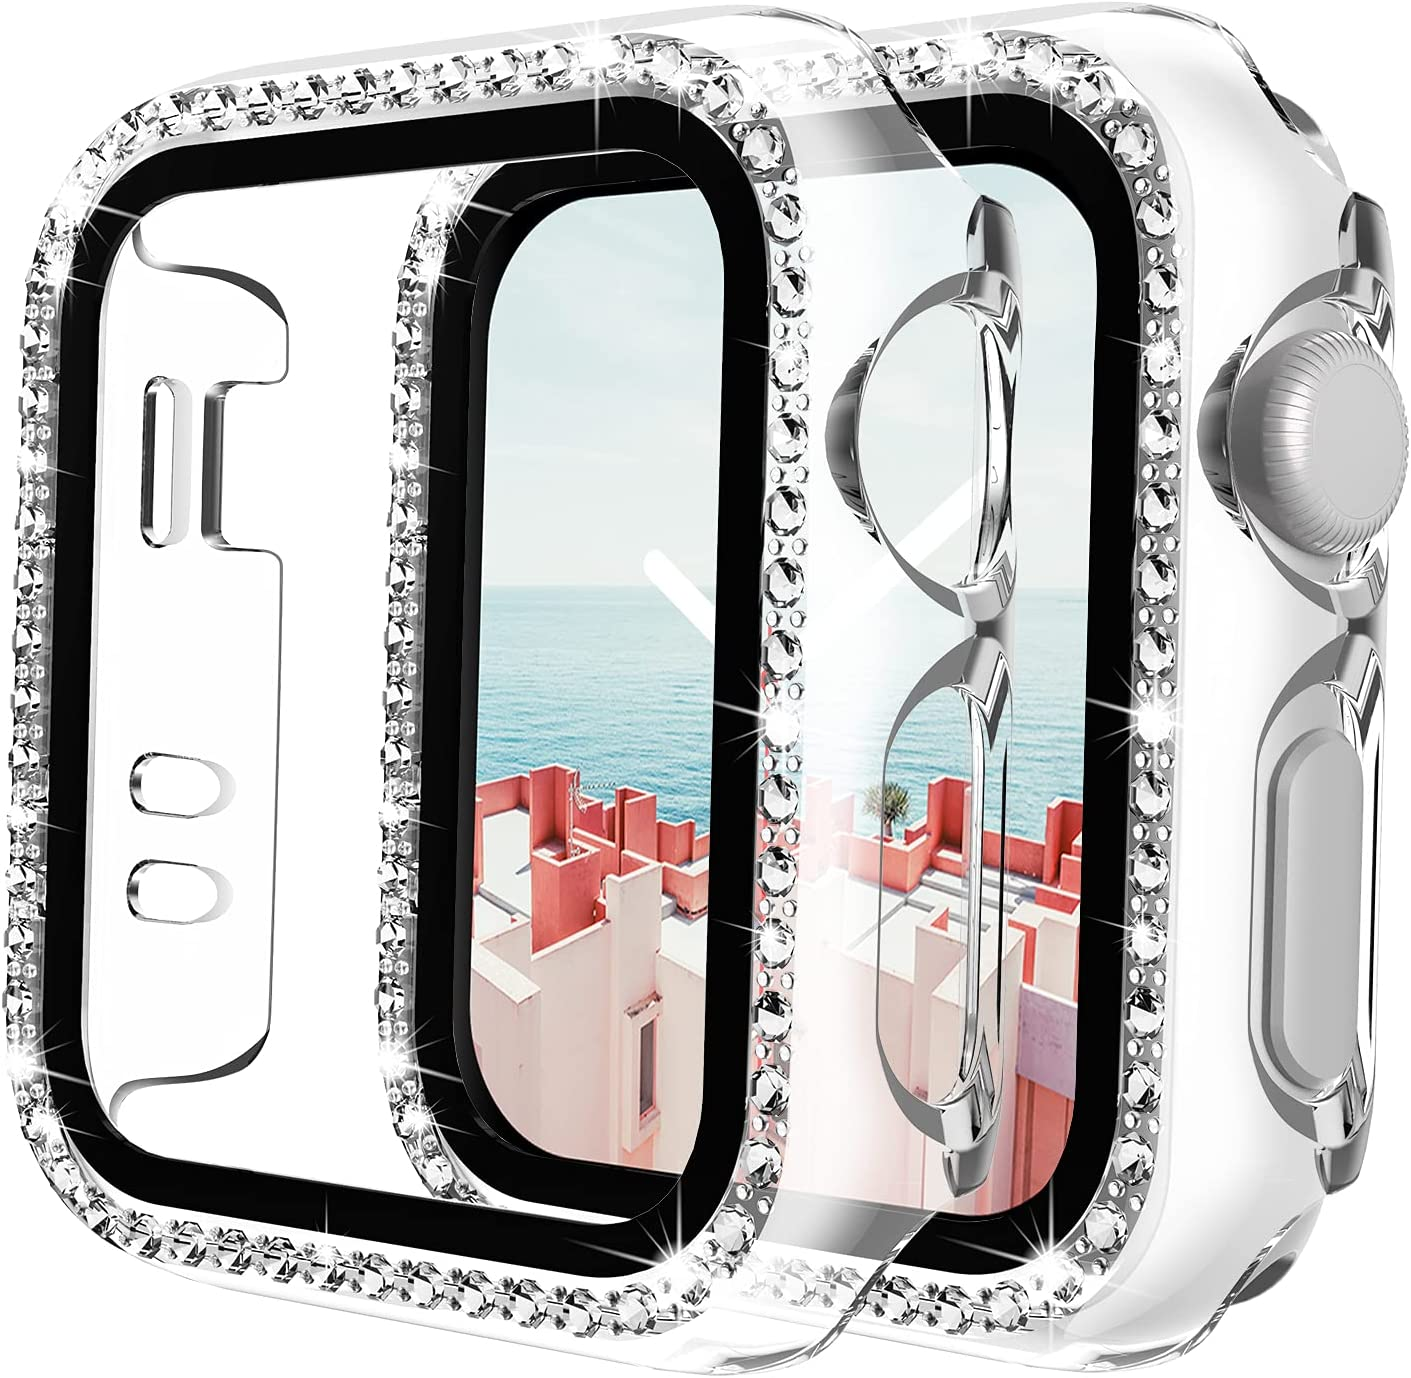 TAURI 2 Pack Case Built in Screen Protector Compatible with Apple Watch 42mm Series 3/2/1 Tempered Glass Screen Protector Cover, Bling Crystal Diamond Full Protection Cover for iWatch - Clear Bling